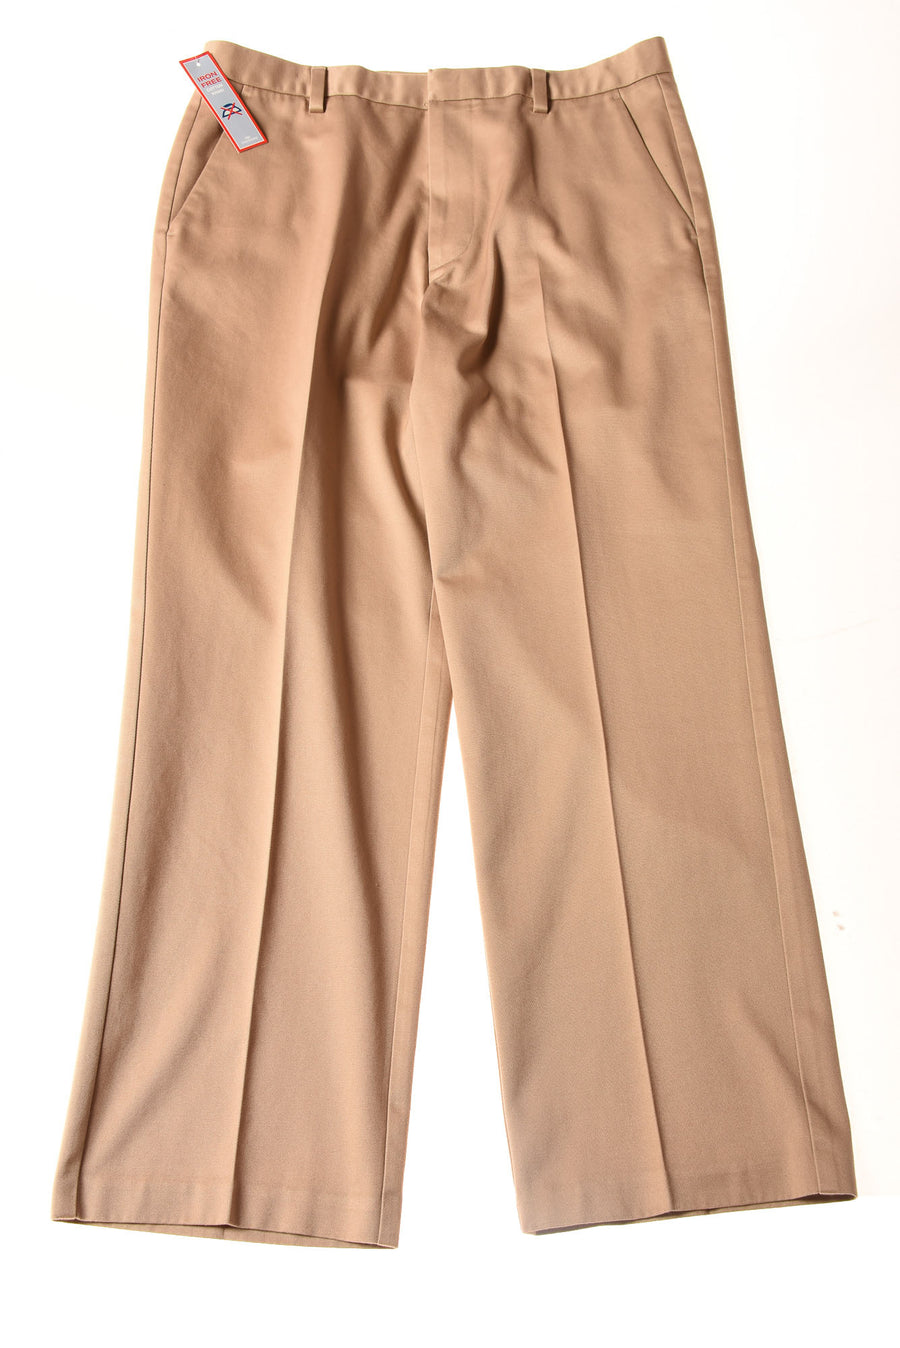 NEW Banana Republic Men's Slacks 38 Tan